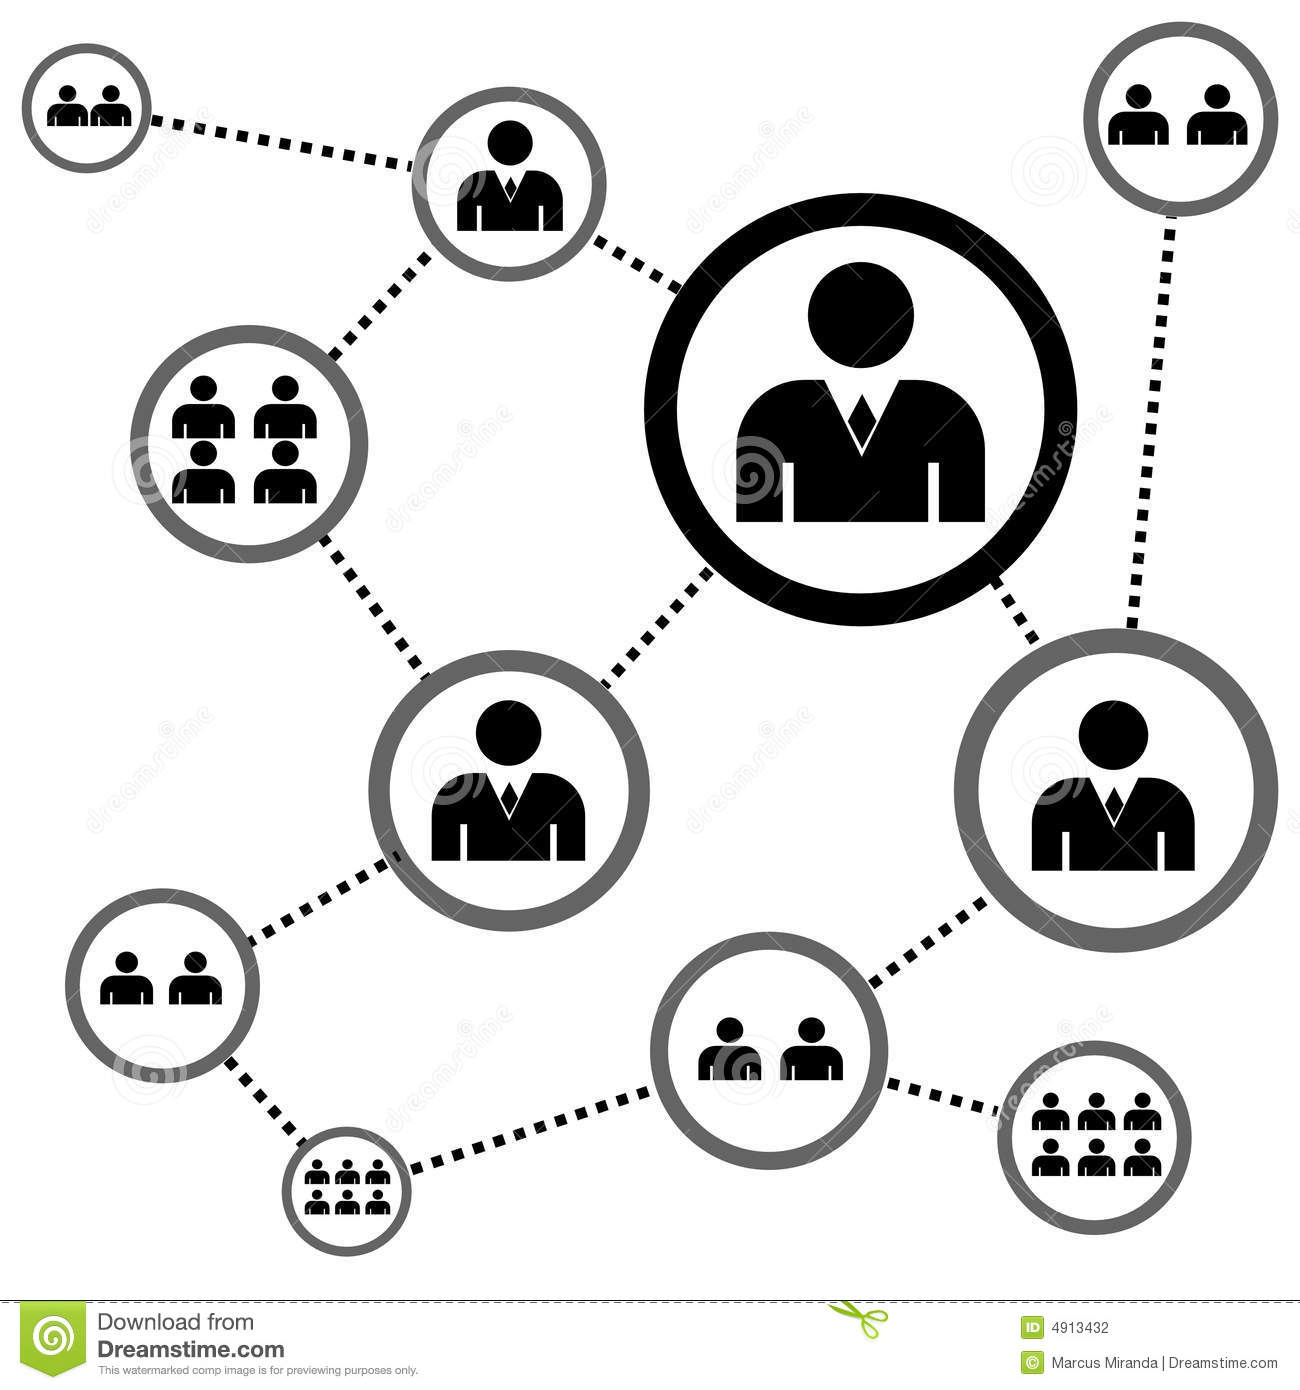 People Network Stock Vector Illustration Of Plan